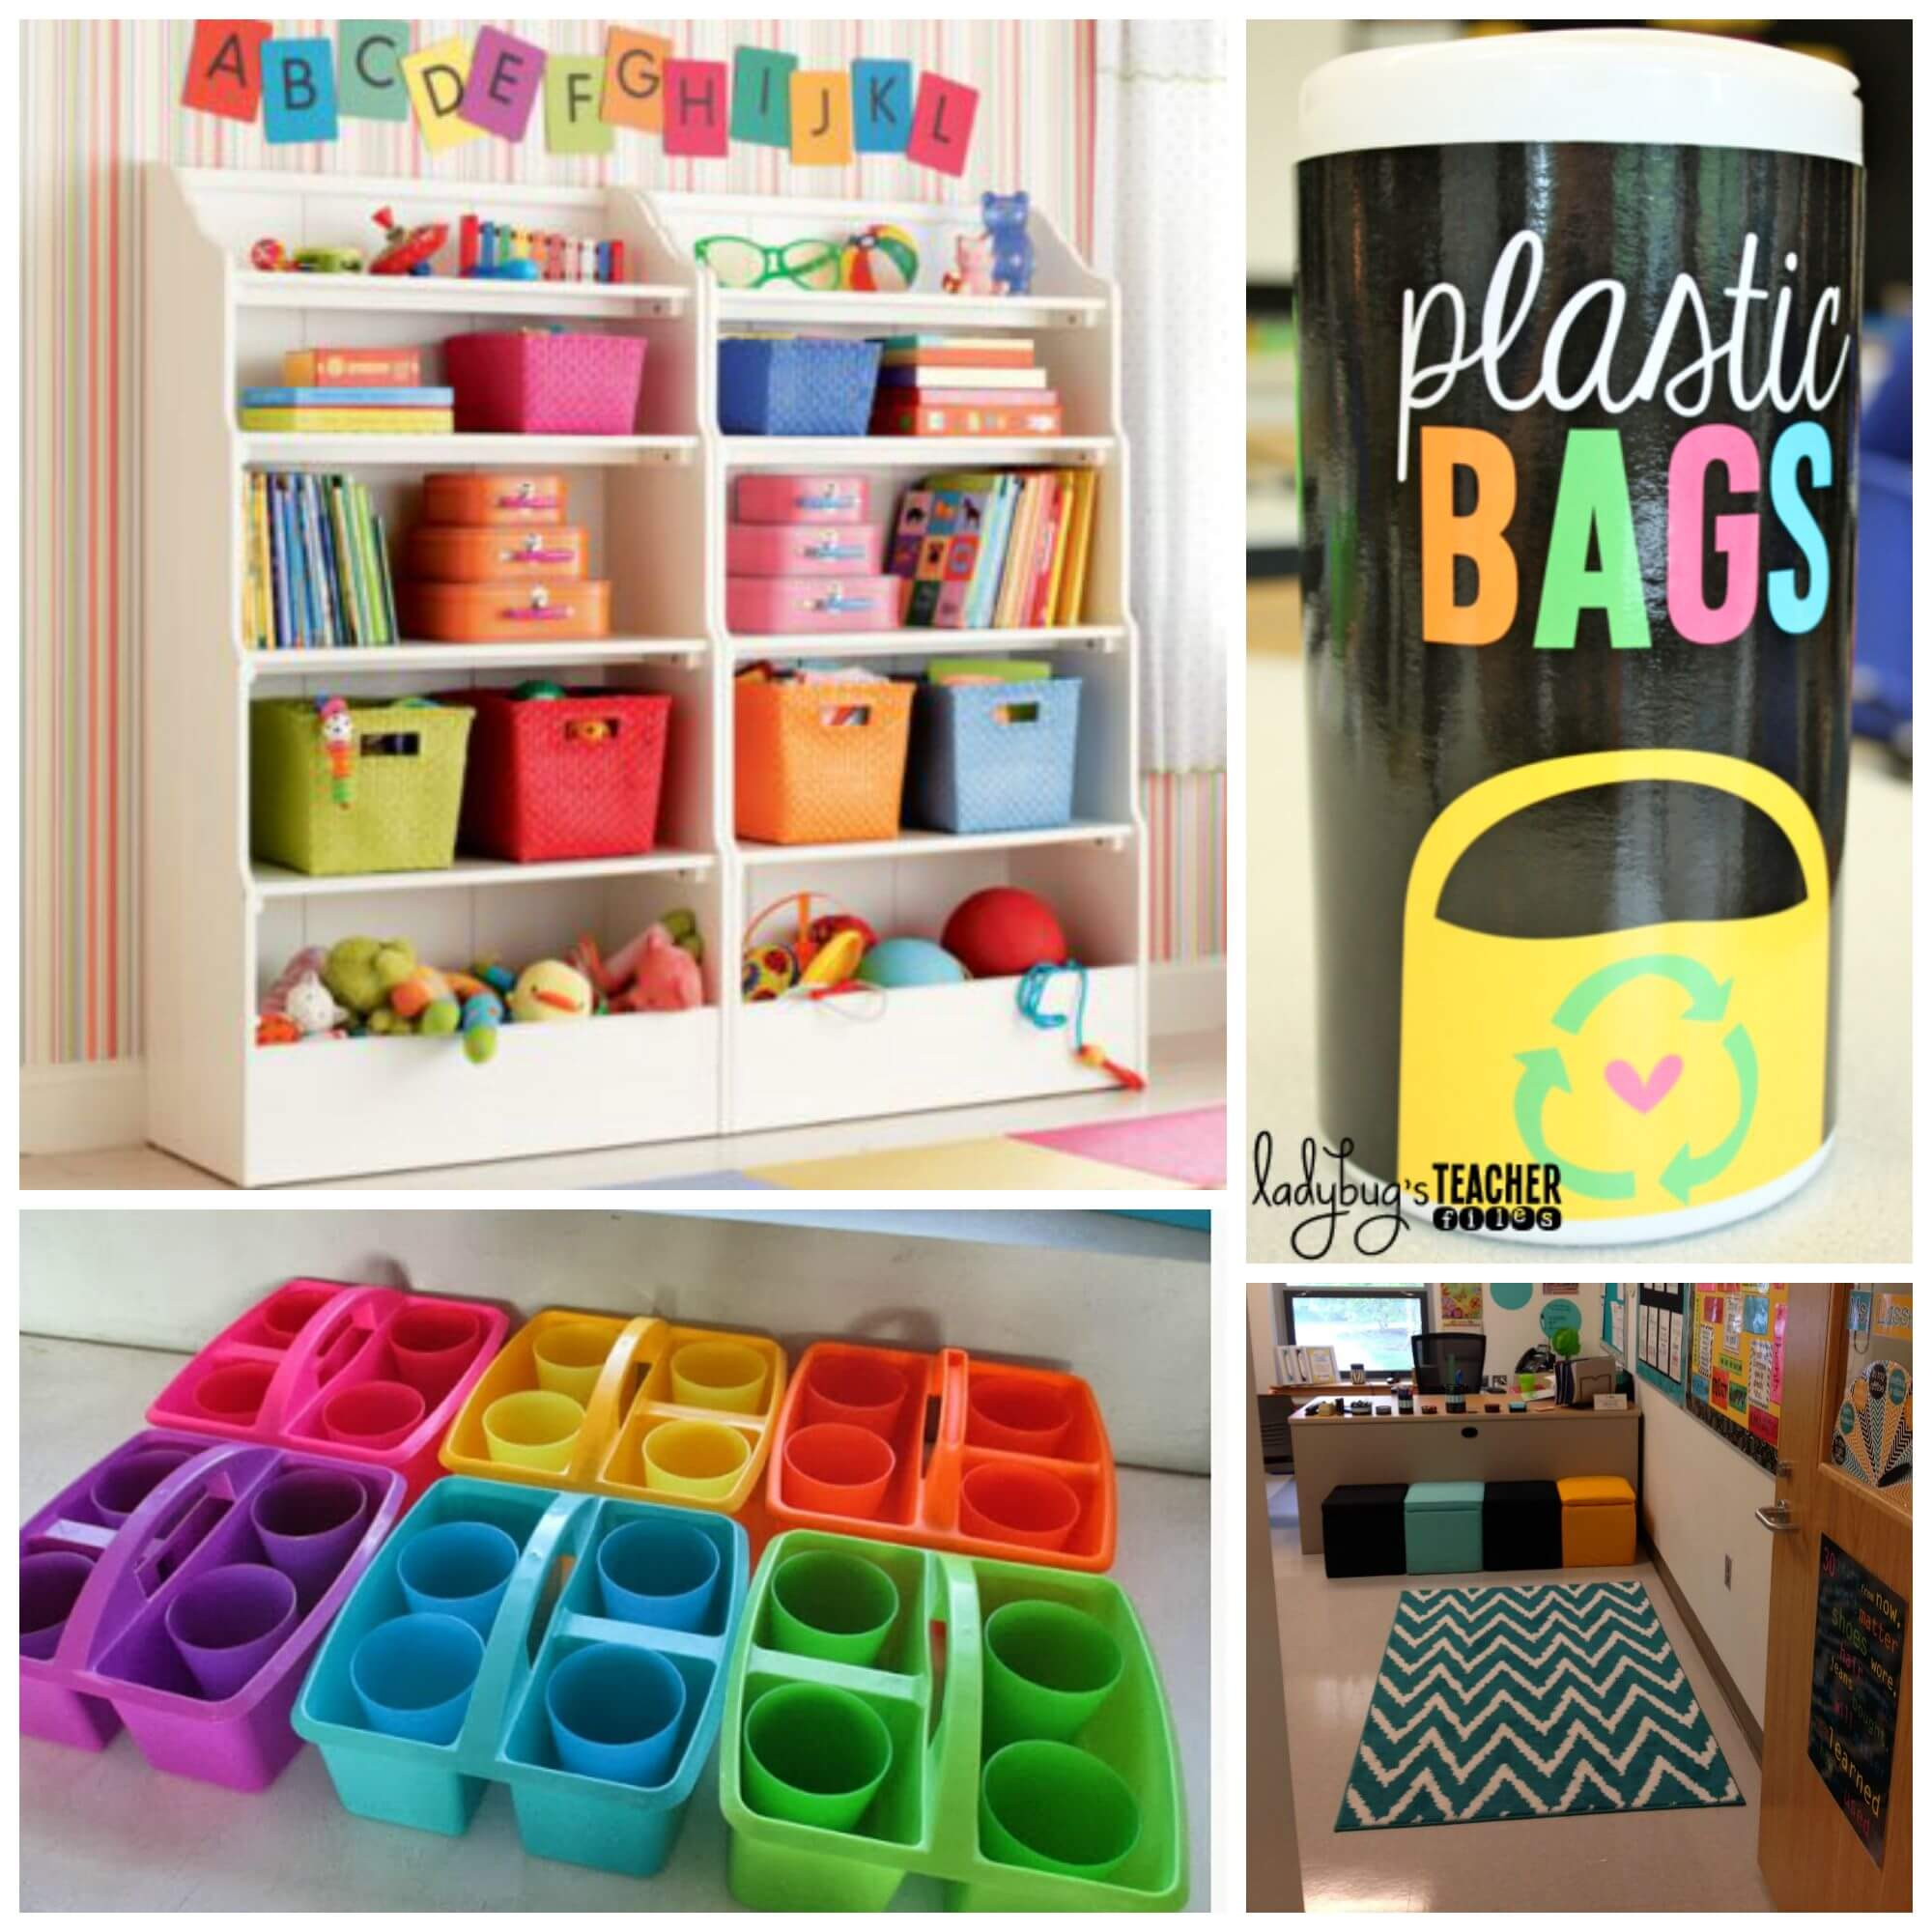 Classroom Decoration Kindergarten ~ Inspiring classroom decoration ideas playdough to plato